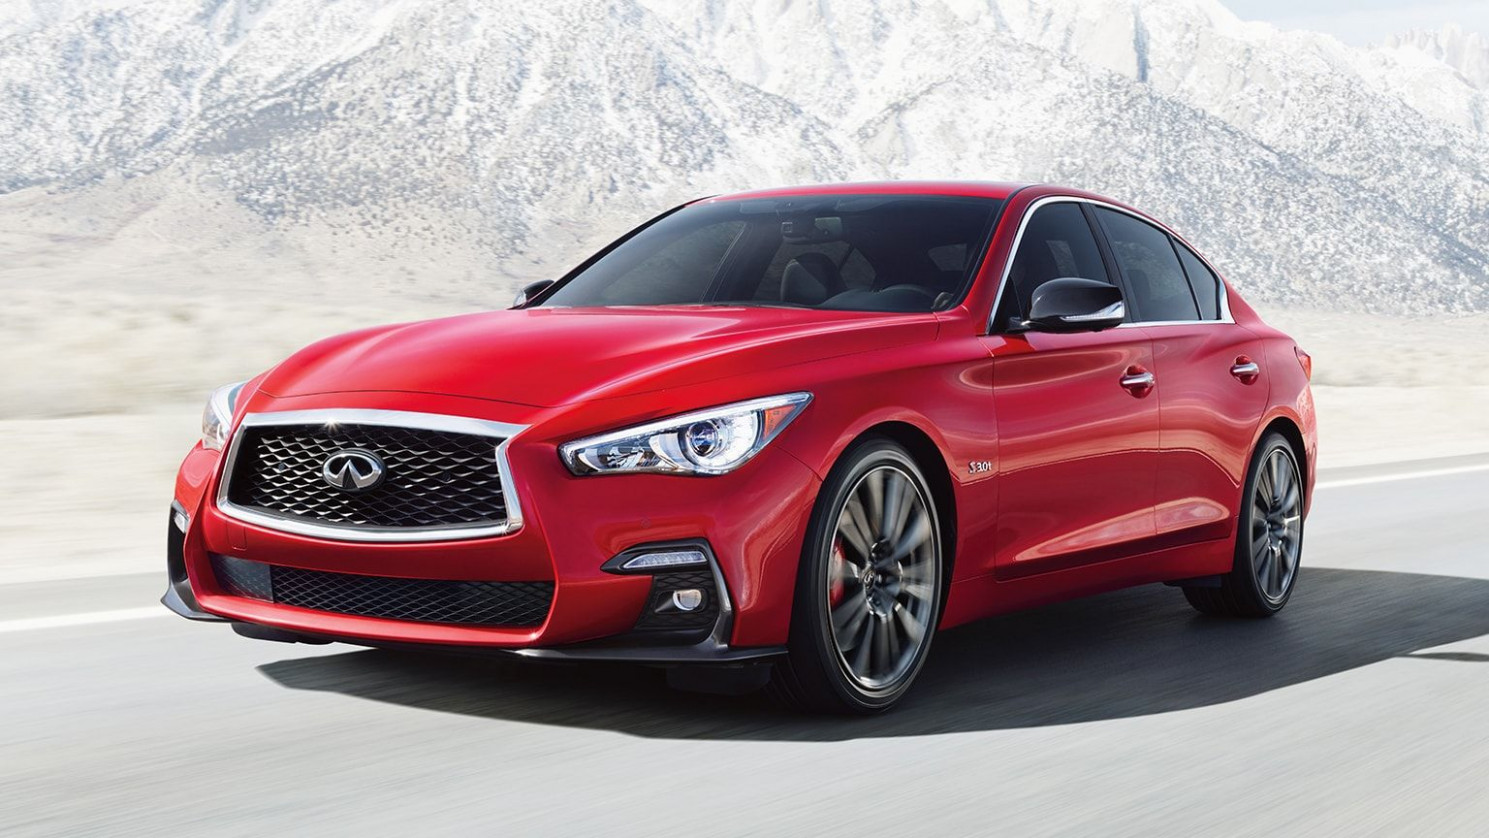 7 Infiniti Q7 Review, Pricing, and Specs - 2020 infiniti hybrid